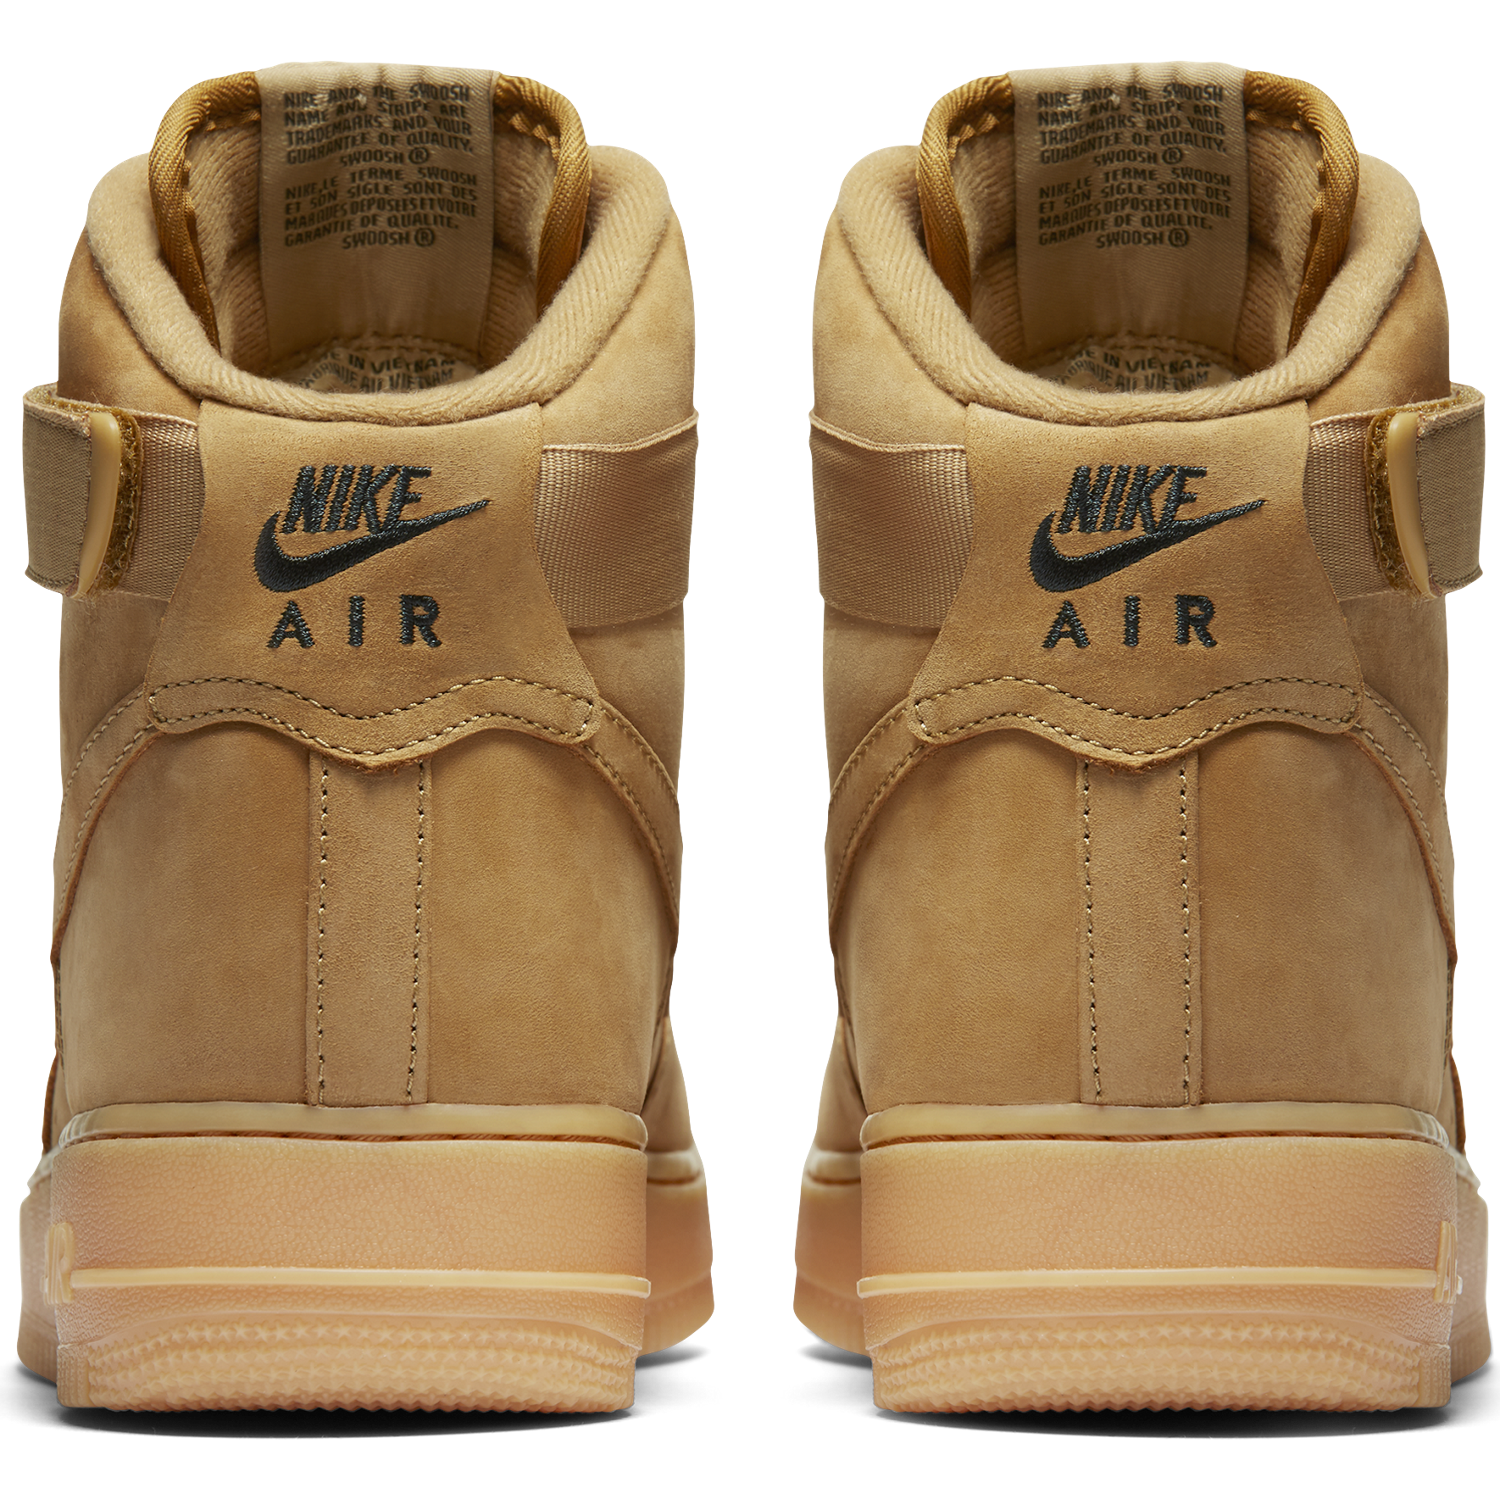 BUTY MĘSKIE NIKE AIR FORCE 1 HIGH 07 LV8 FLAX 882096-200